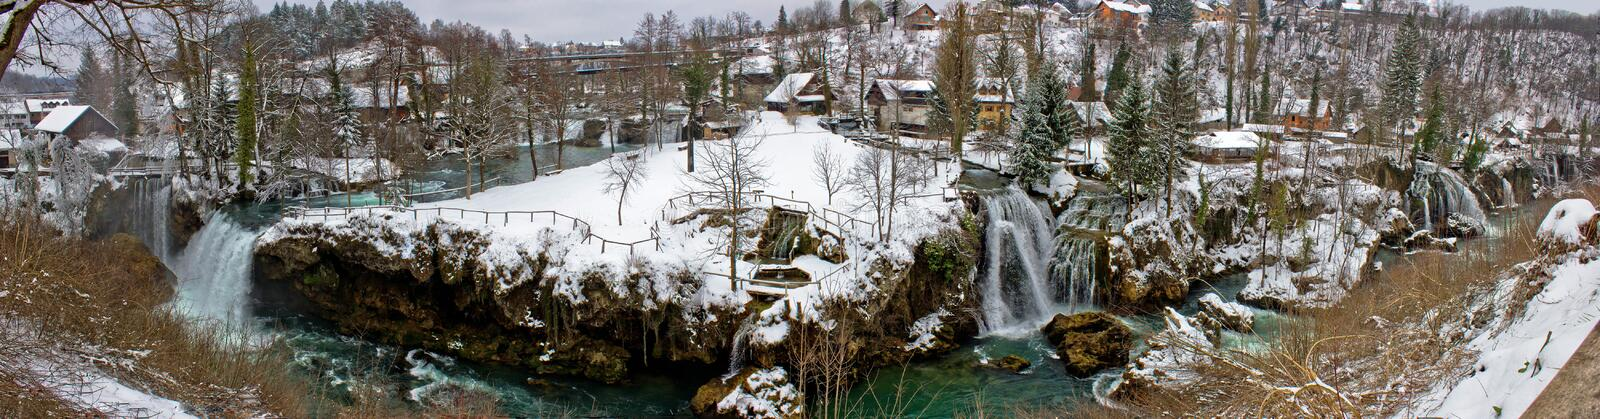 Rastoke waterfalls winter panorama, Croatia stock photography